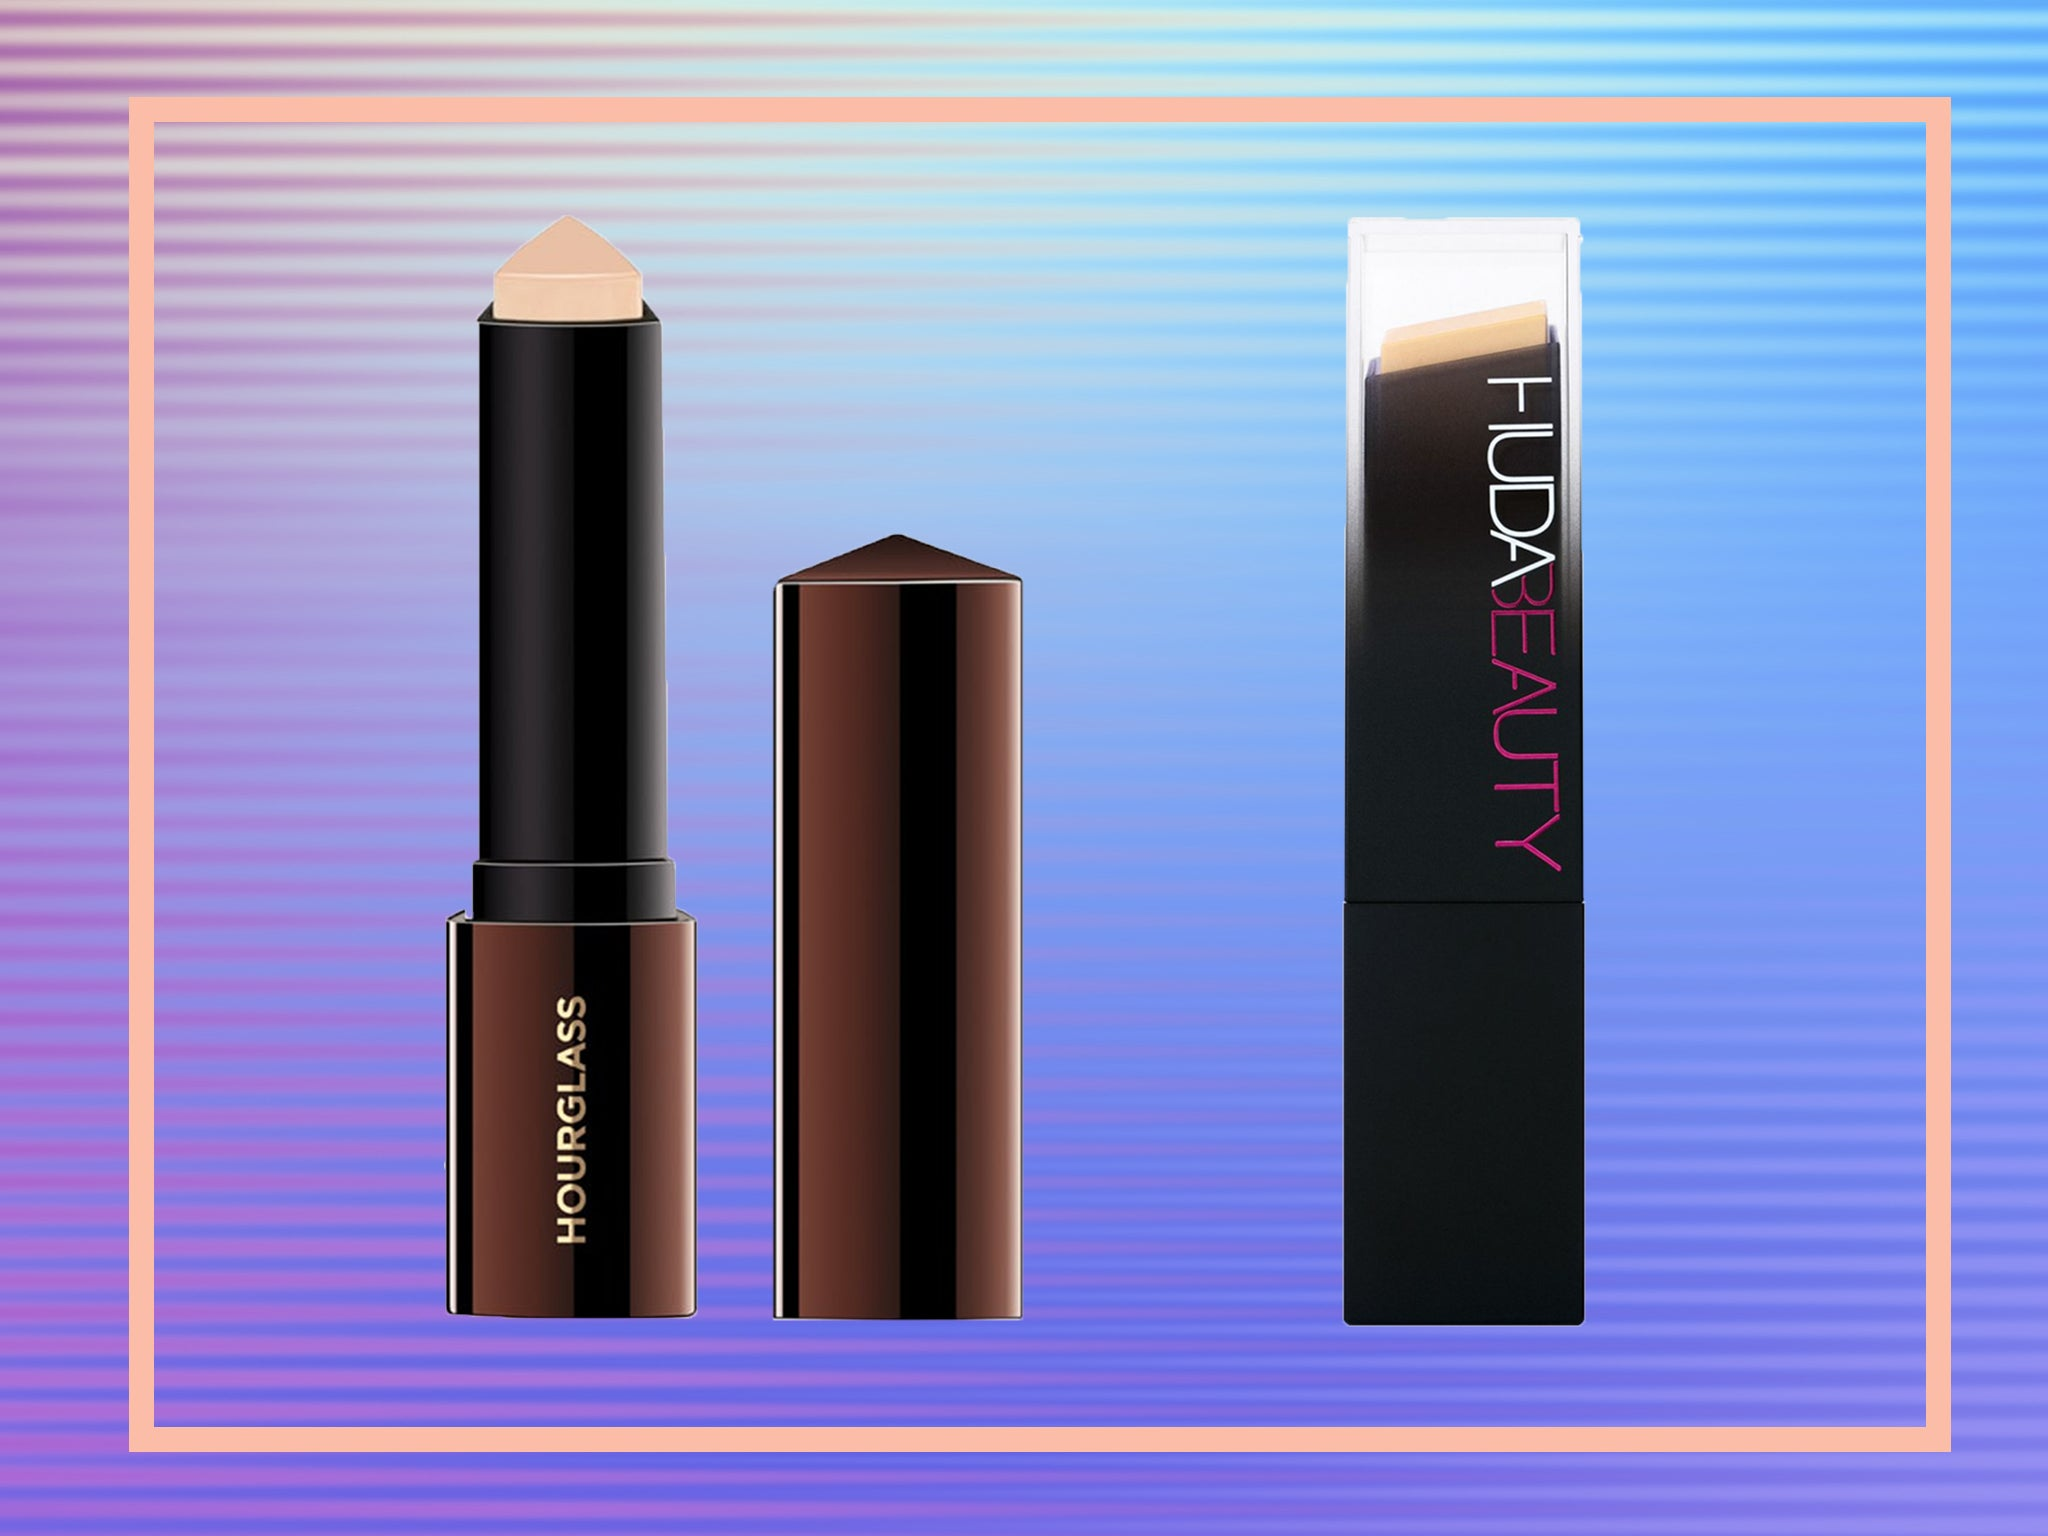 Huda Beauty Foundation Stick Review How Does It Compare To Hourglass S Formula The Independent